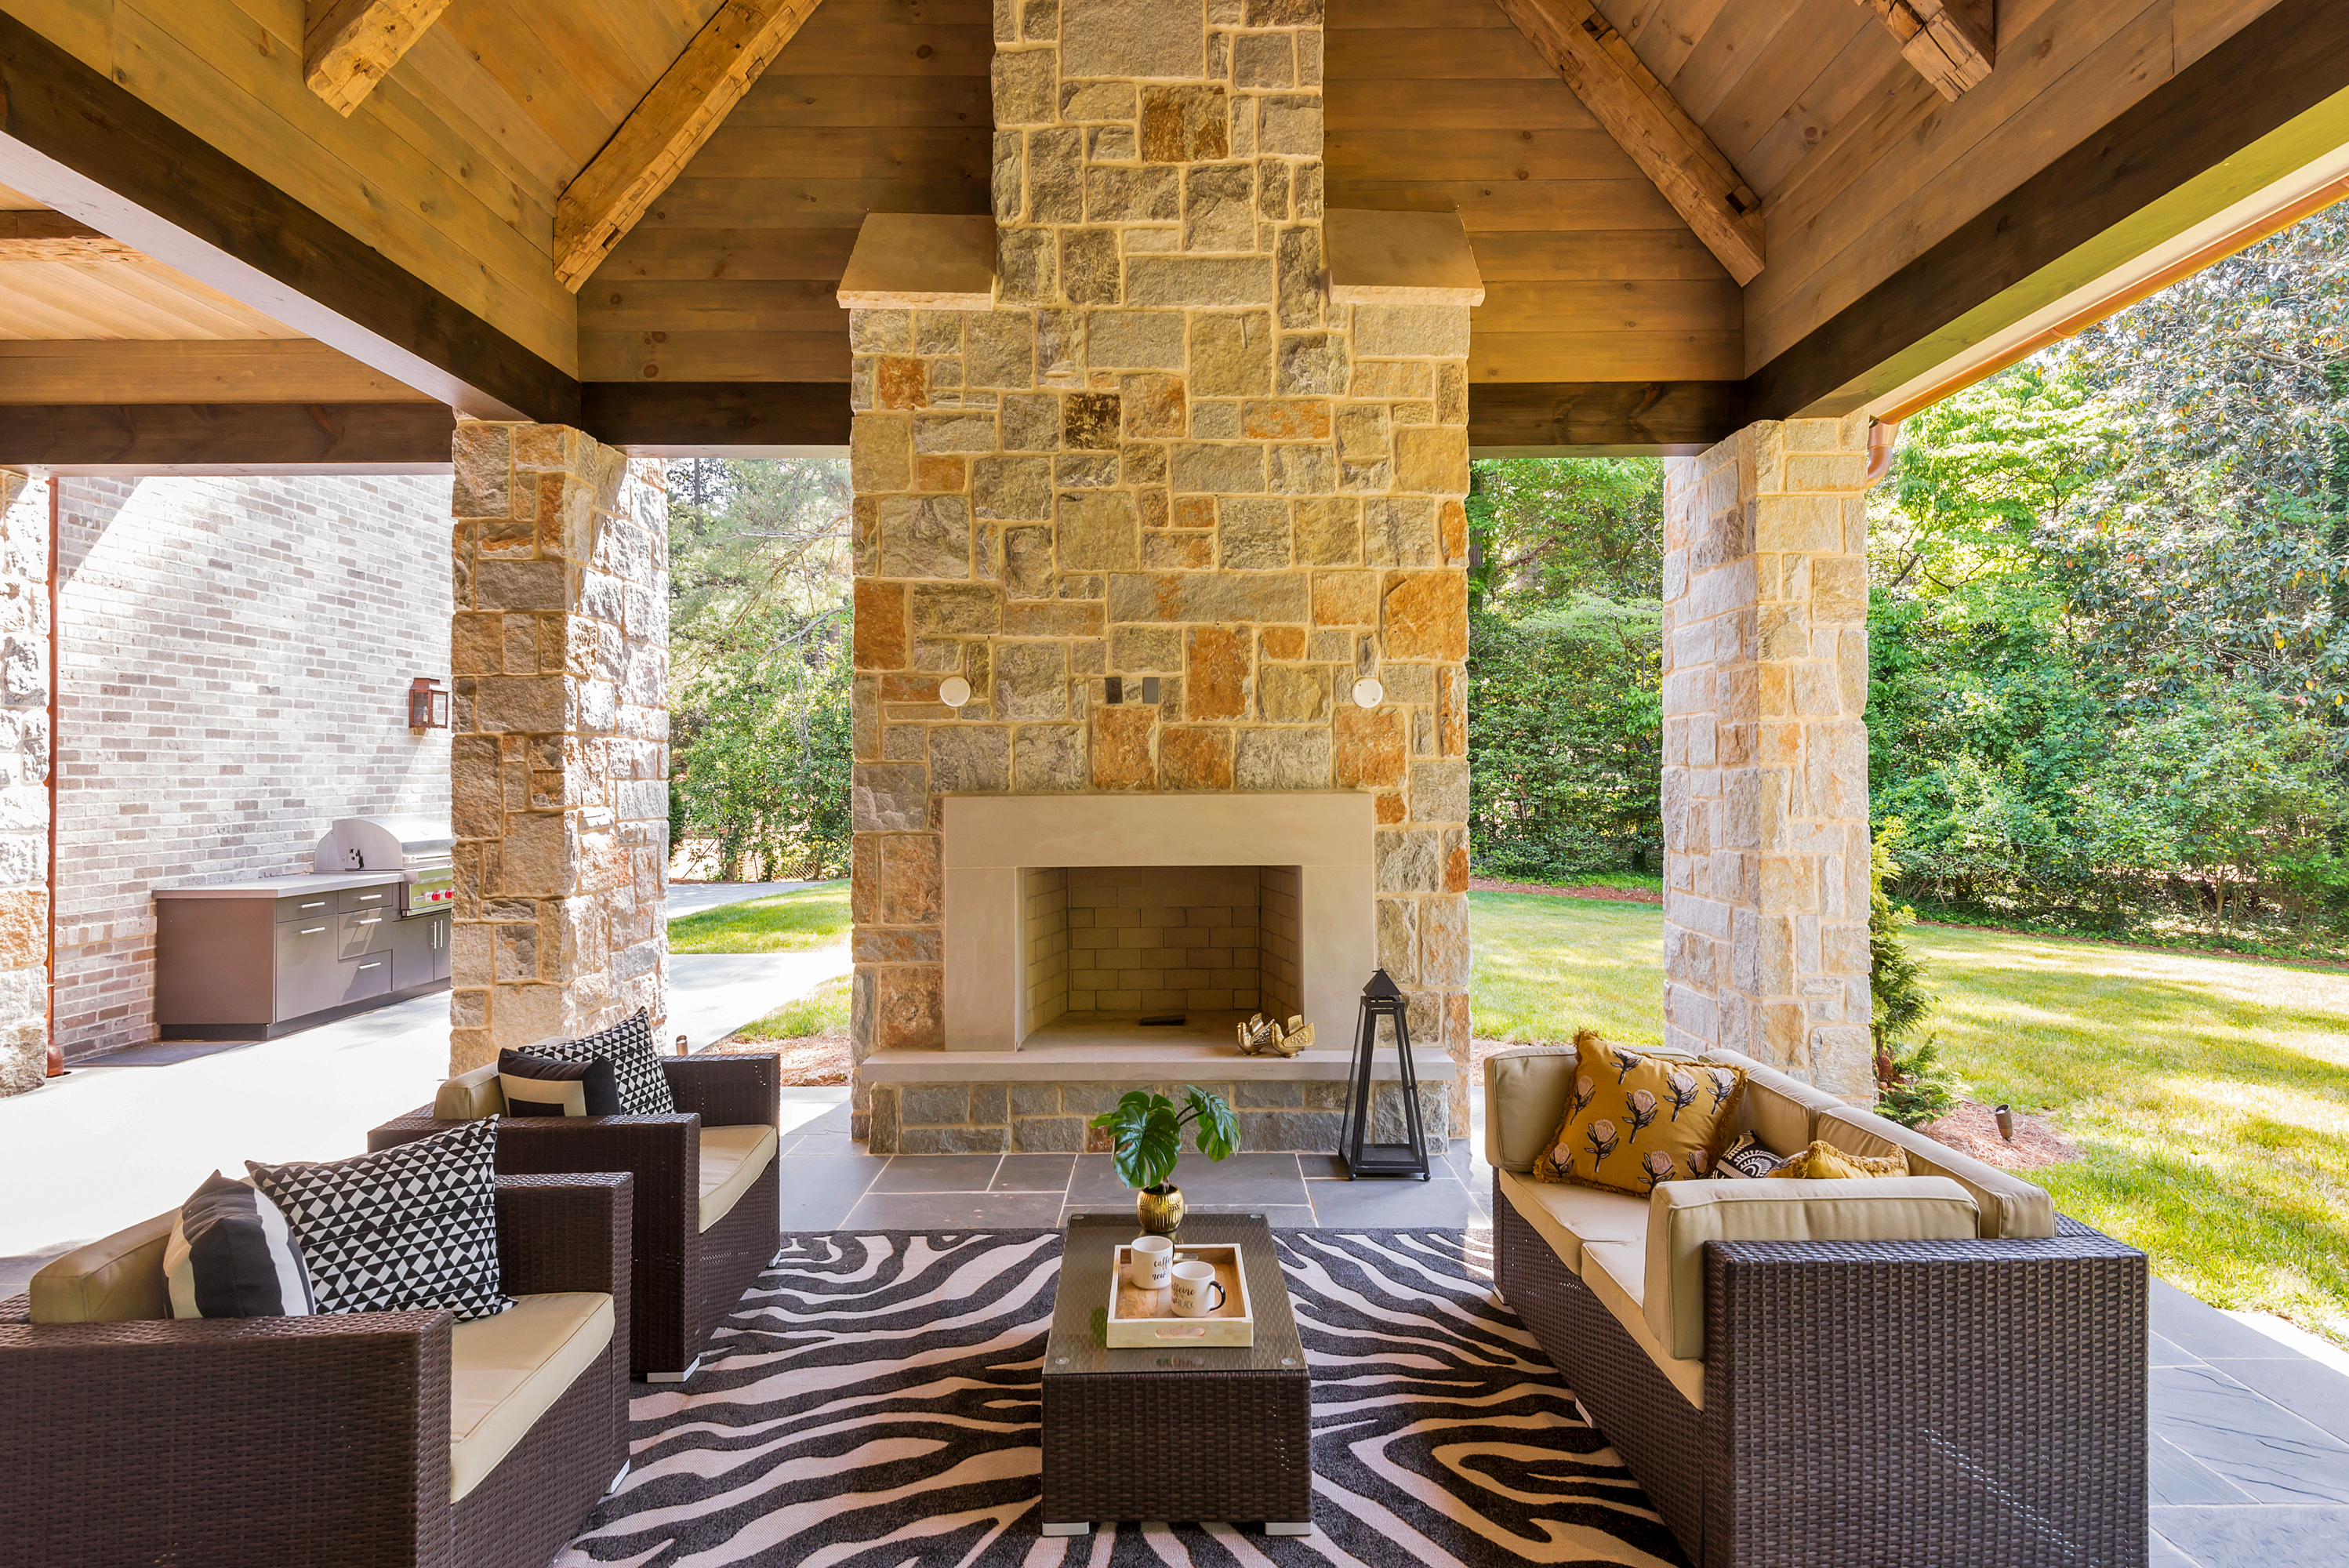 Outdoor Living Spaces Designed for Comfort | Design2Sell ... on Outside Living Area id=66301